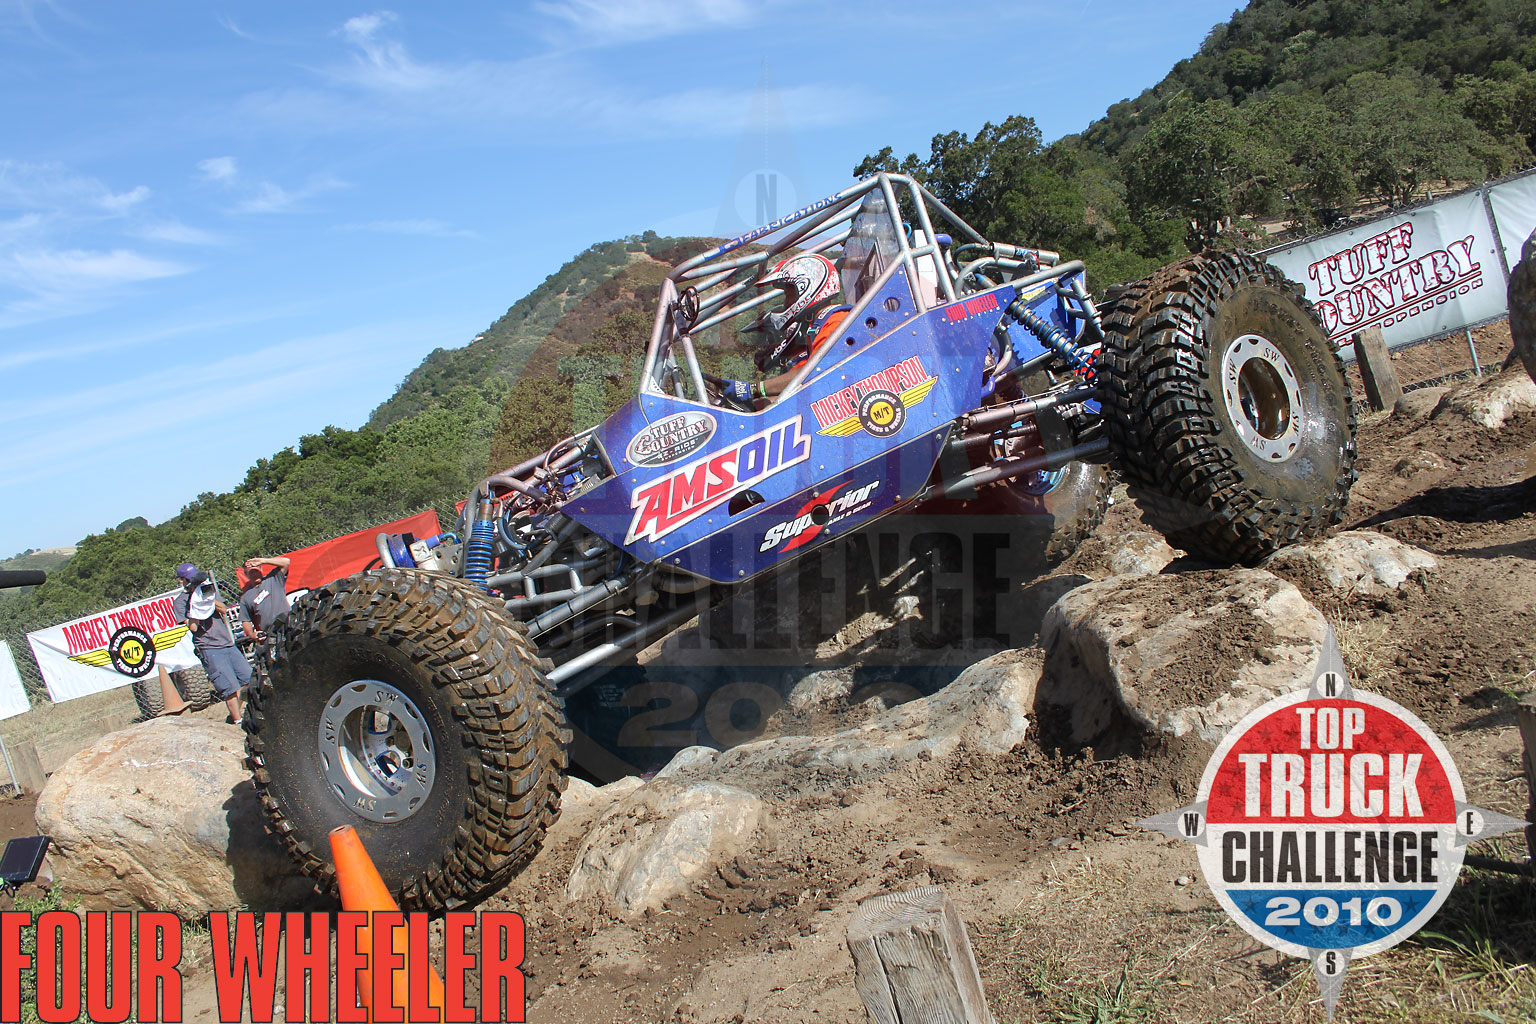 129 1006 4237+2010 top truck challenge frame twister+joe quichocho tube chassis cj7 buggy